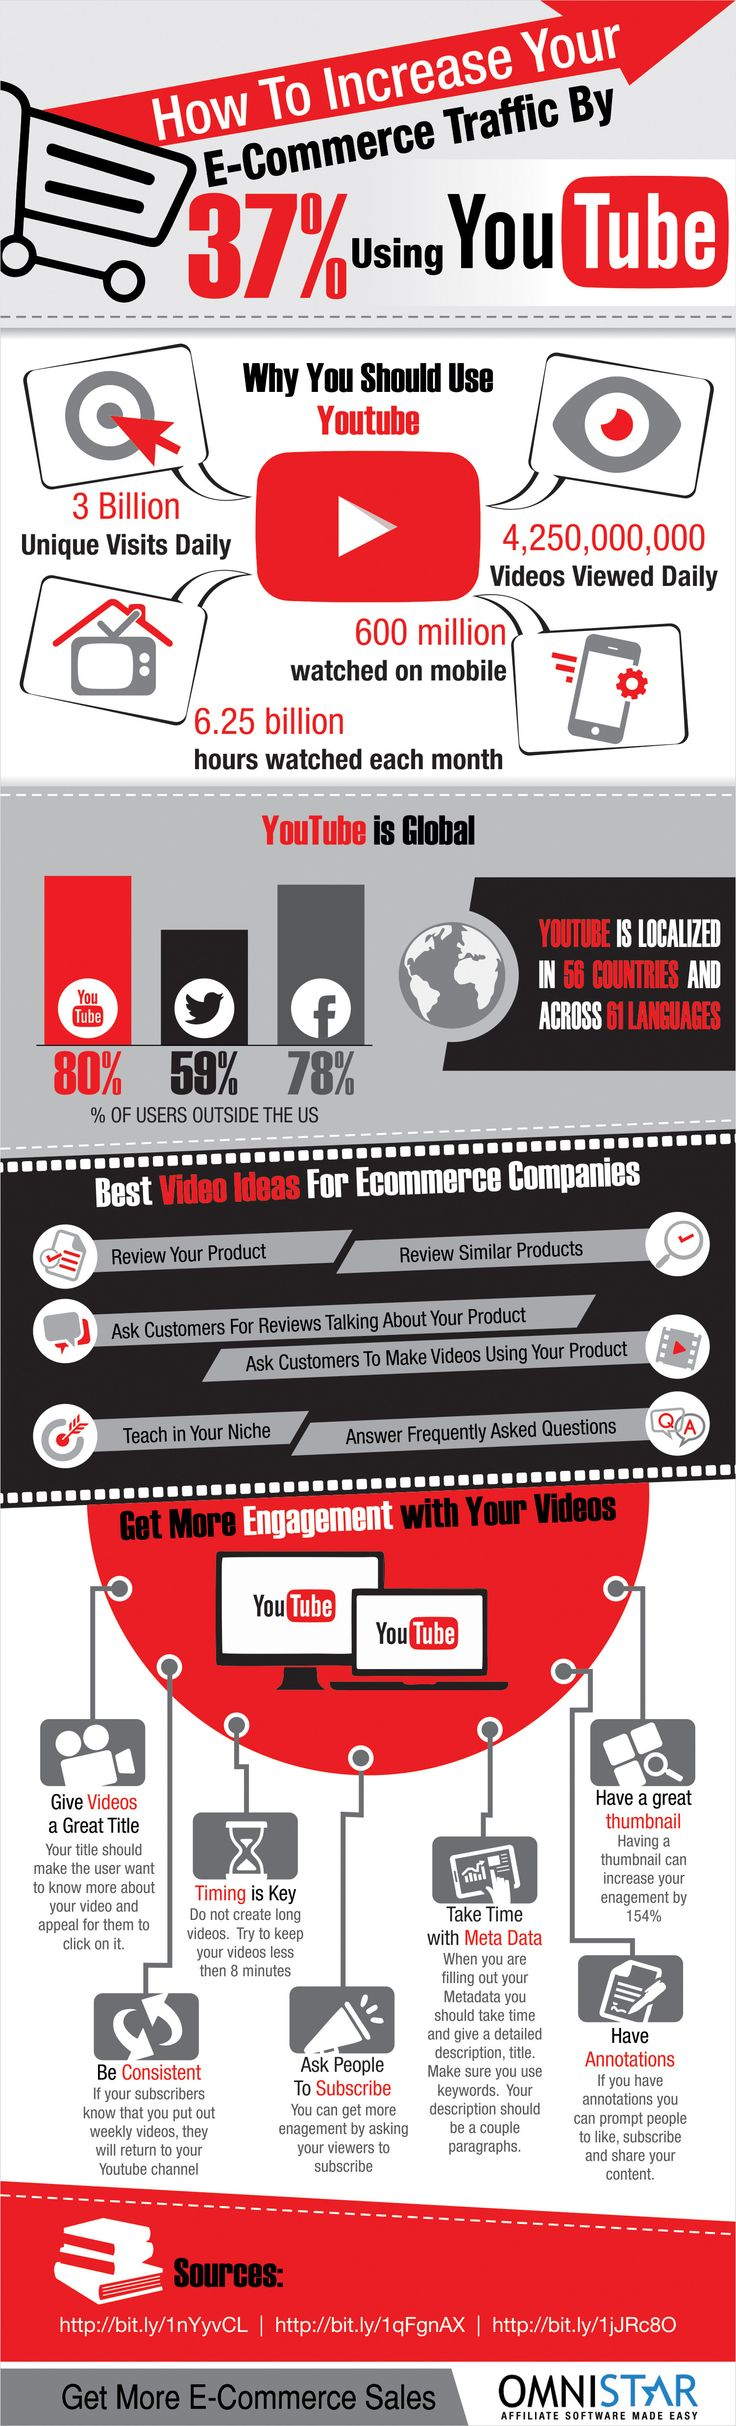 """Thank you Social Media Delivered for: """"How To Increase Your E-Commerce Traffic By 37% Using YouTube."""""""